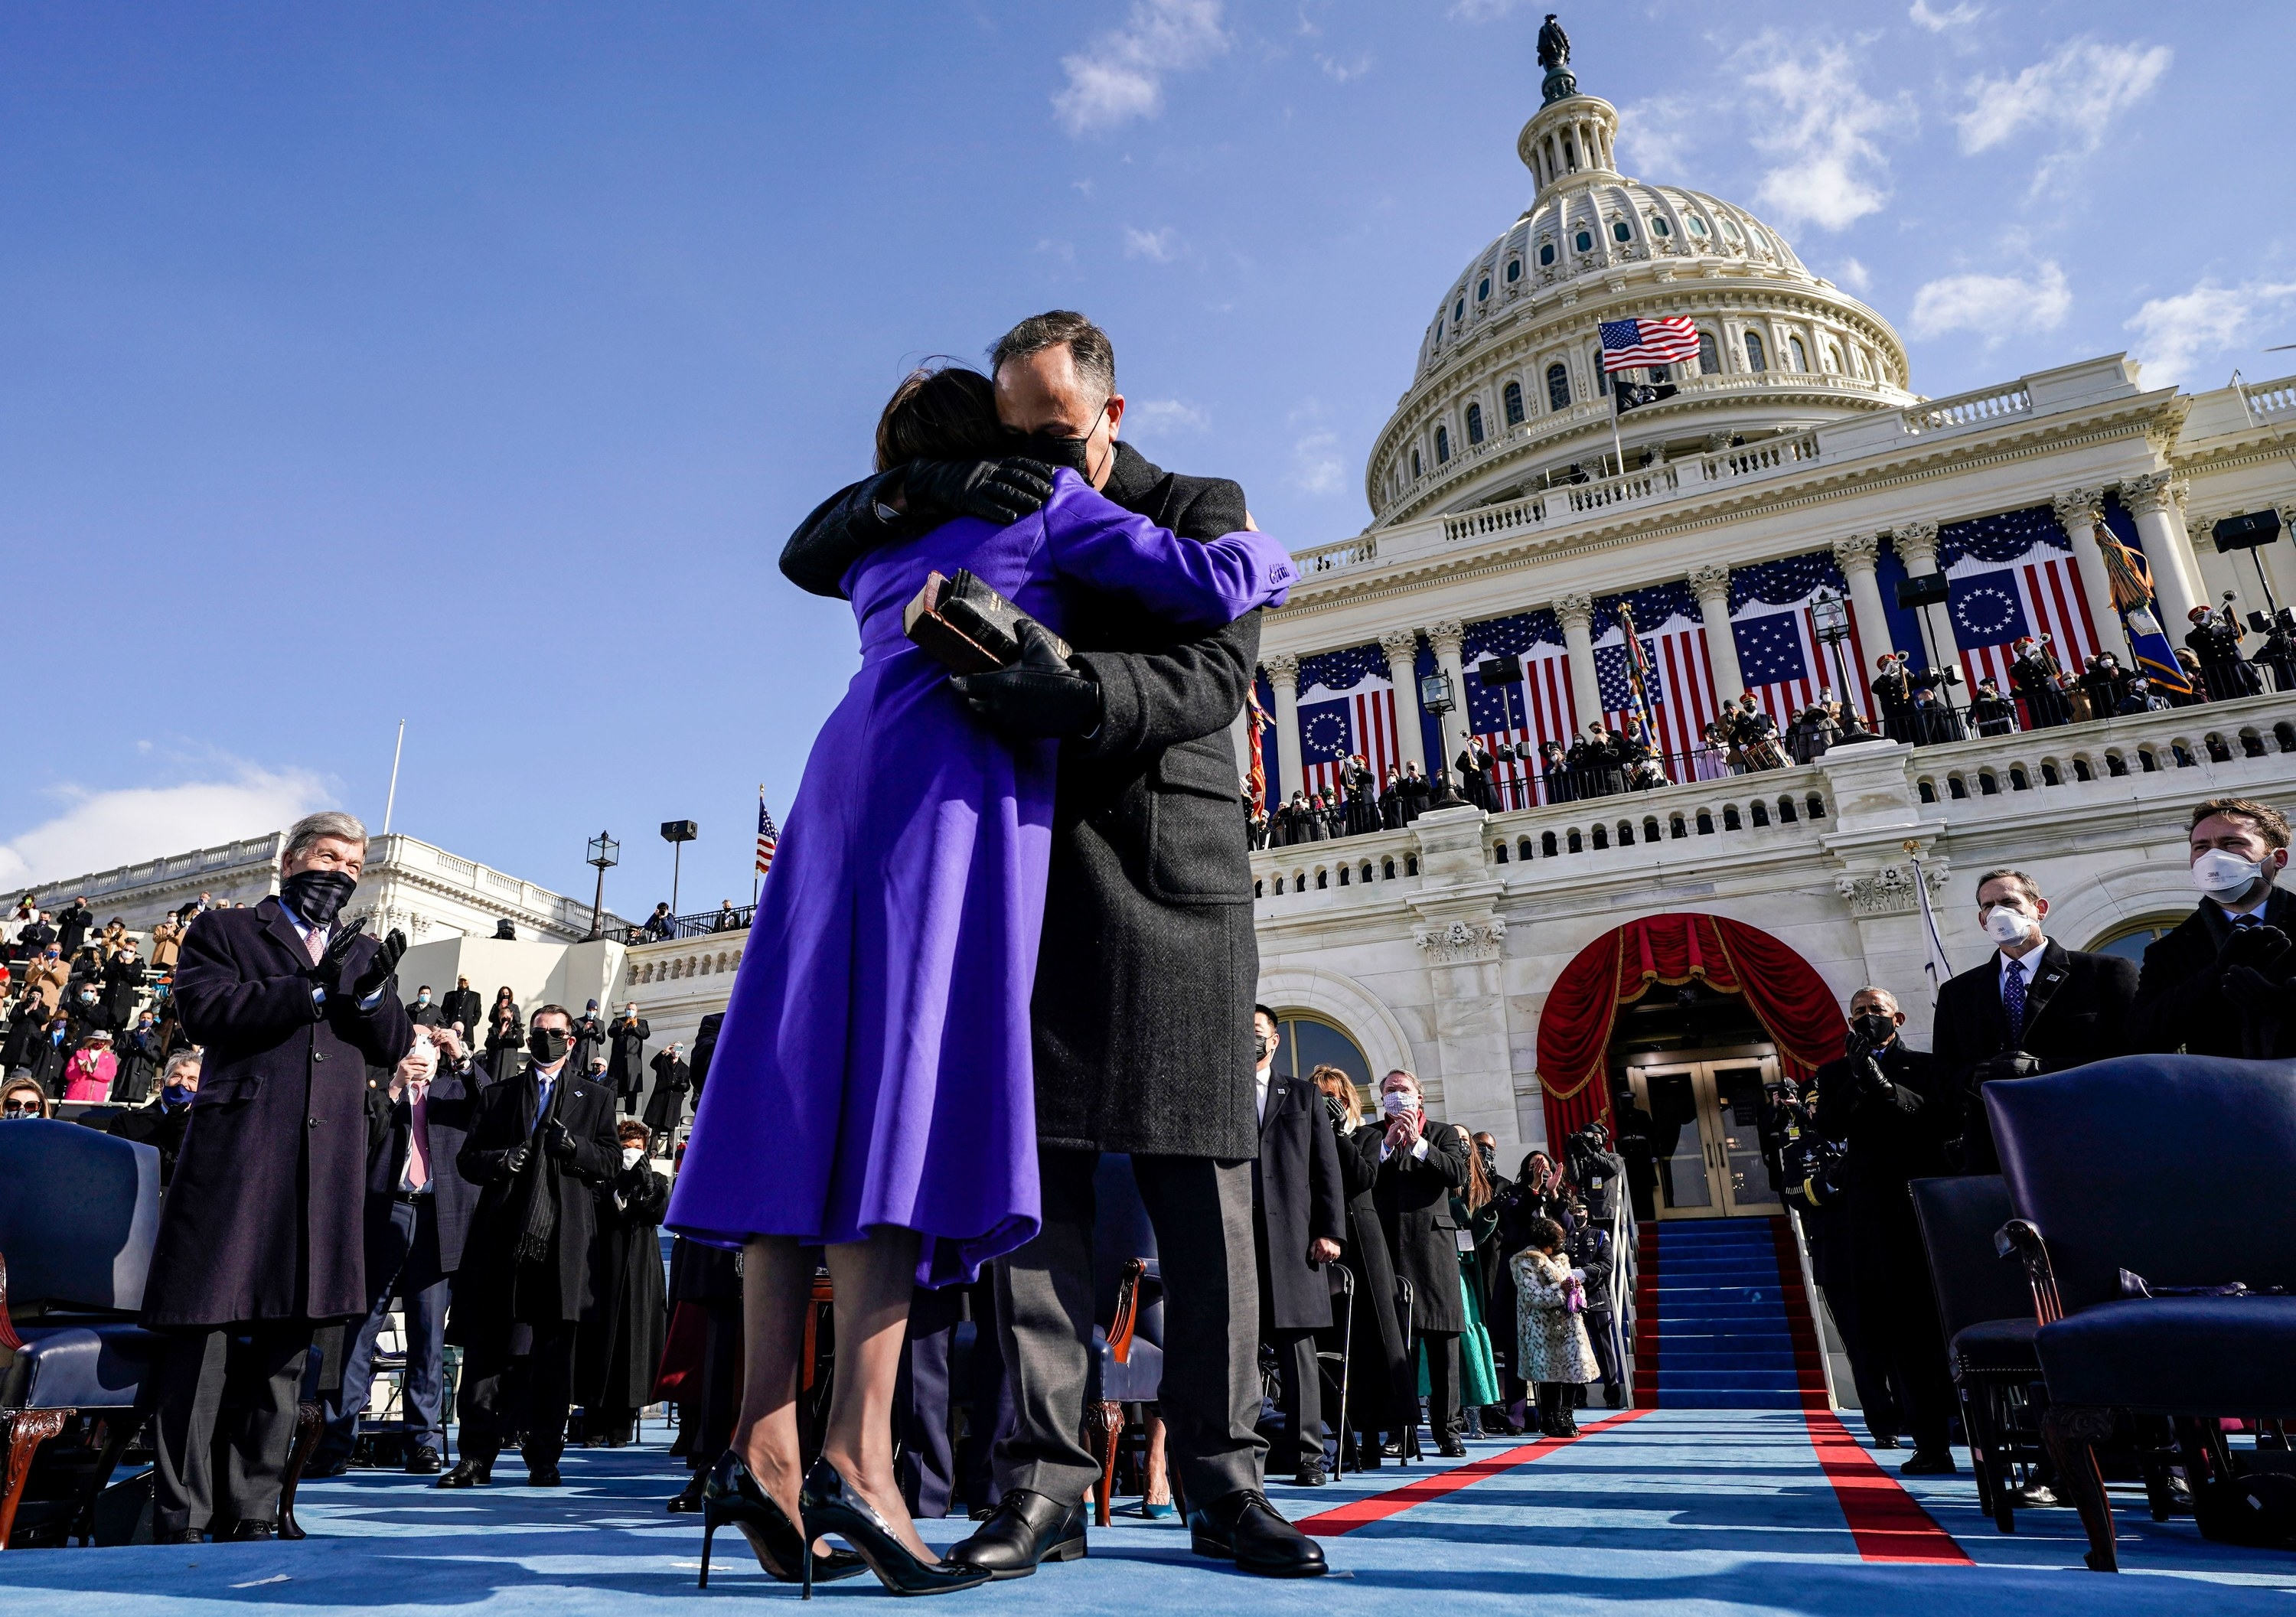 Doug Emhodd hugging his wife after she is sworn in as Vice President